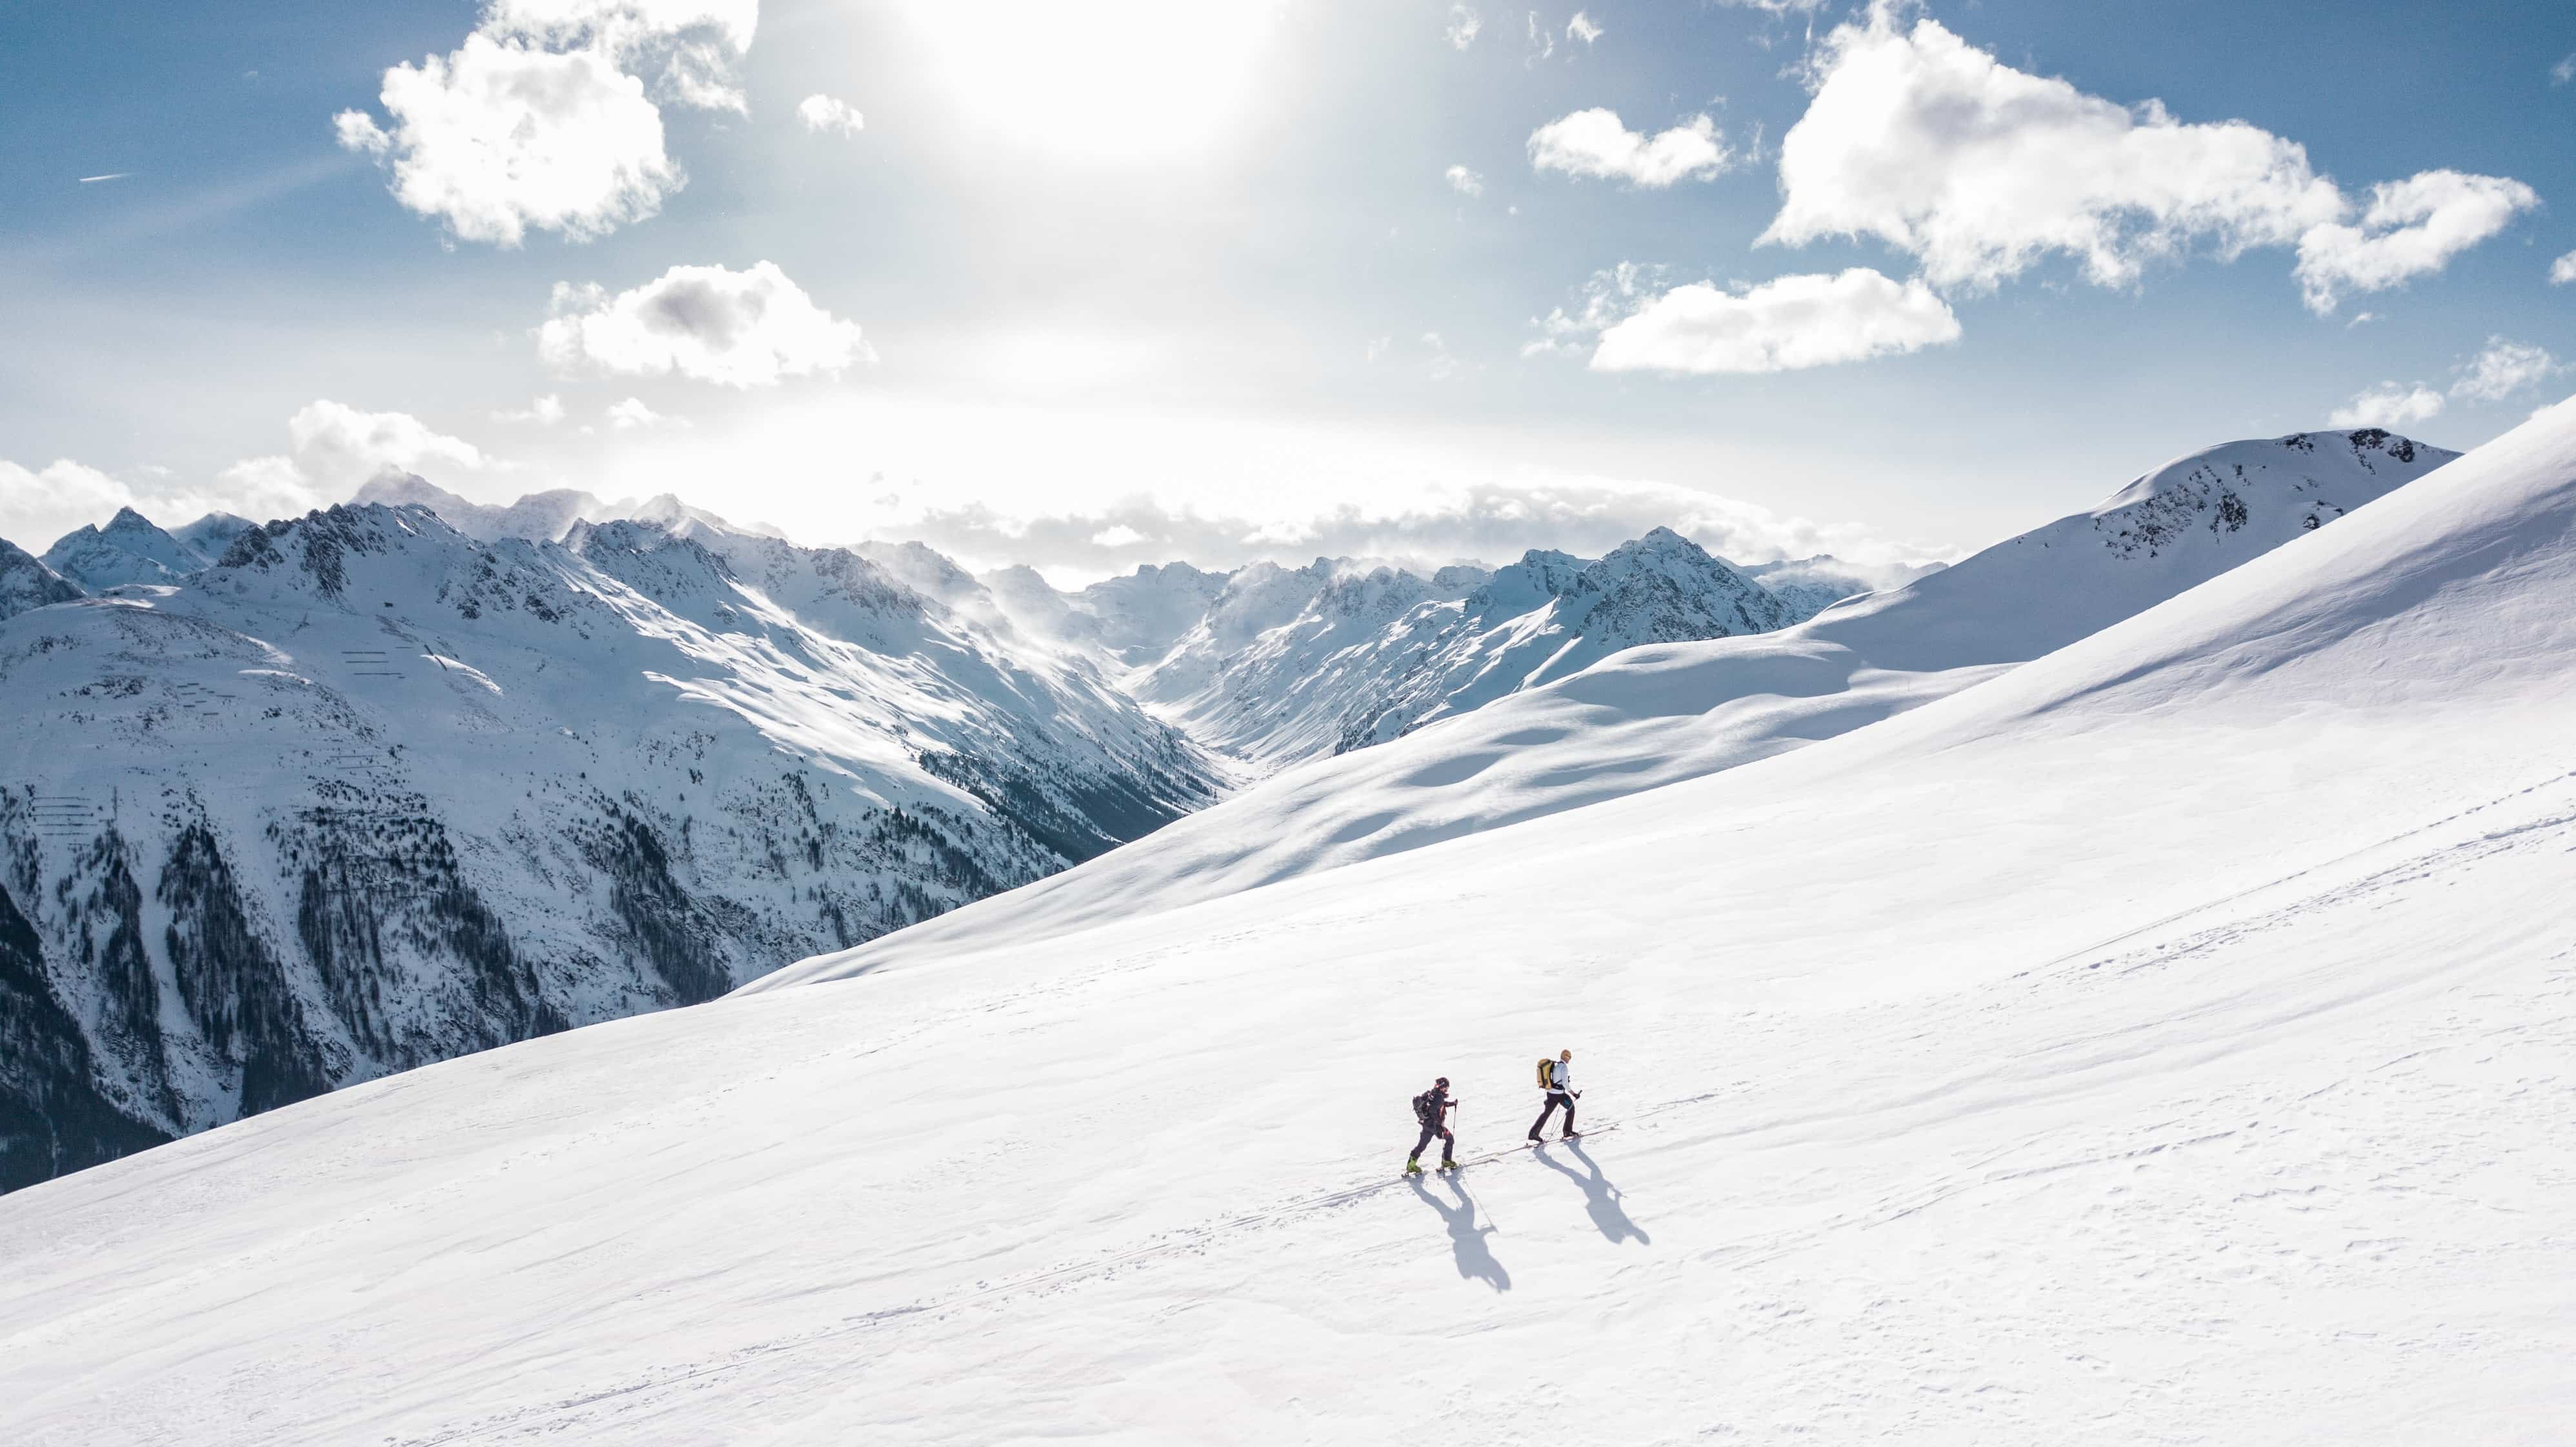 Two people ski mountaineering in the Alps